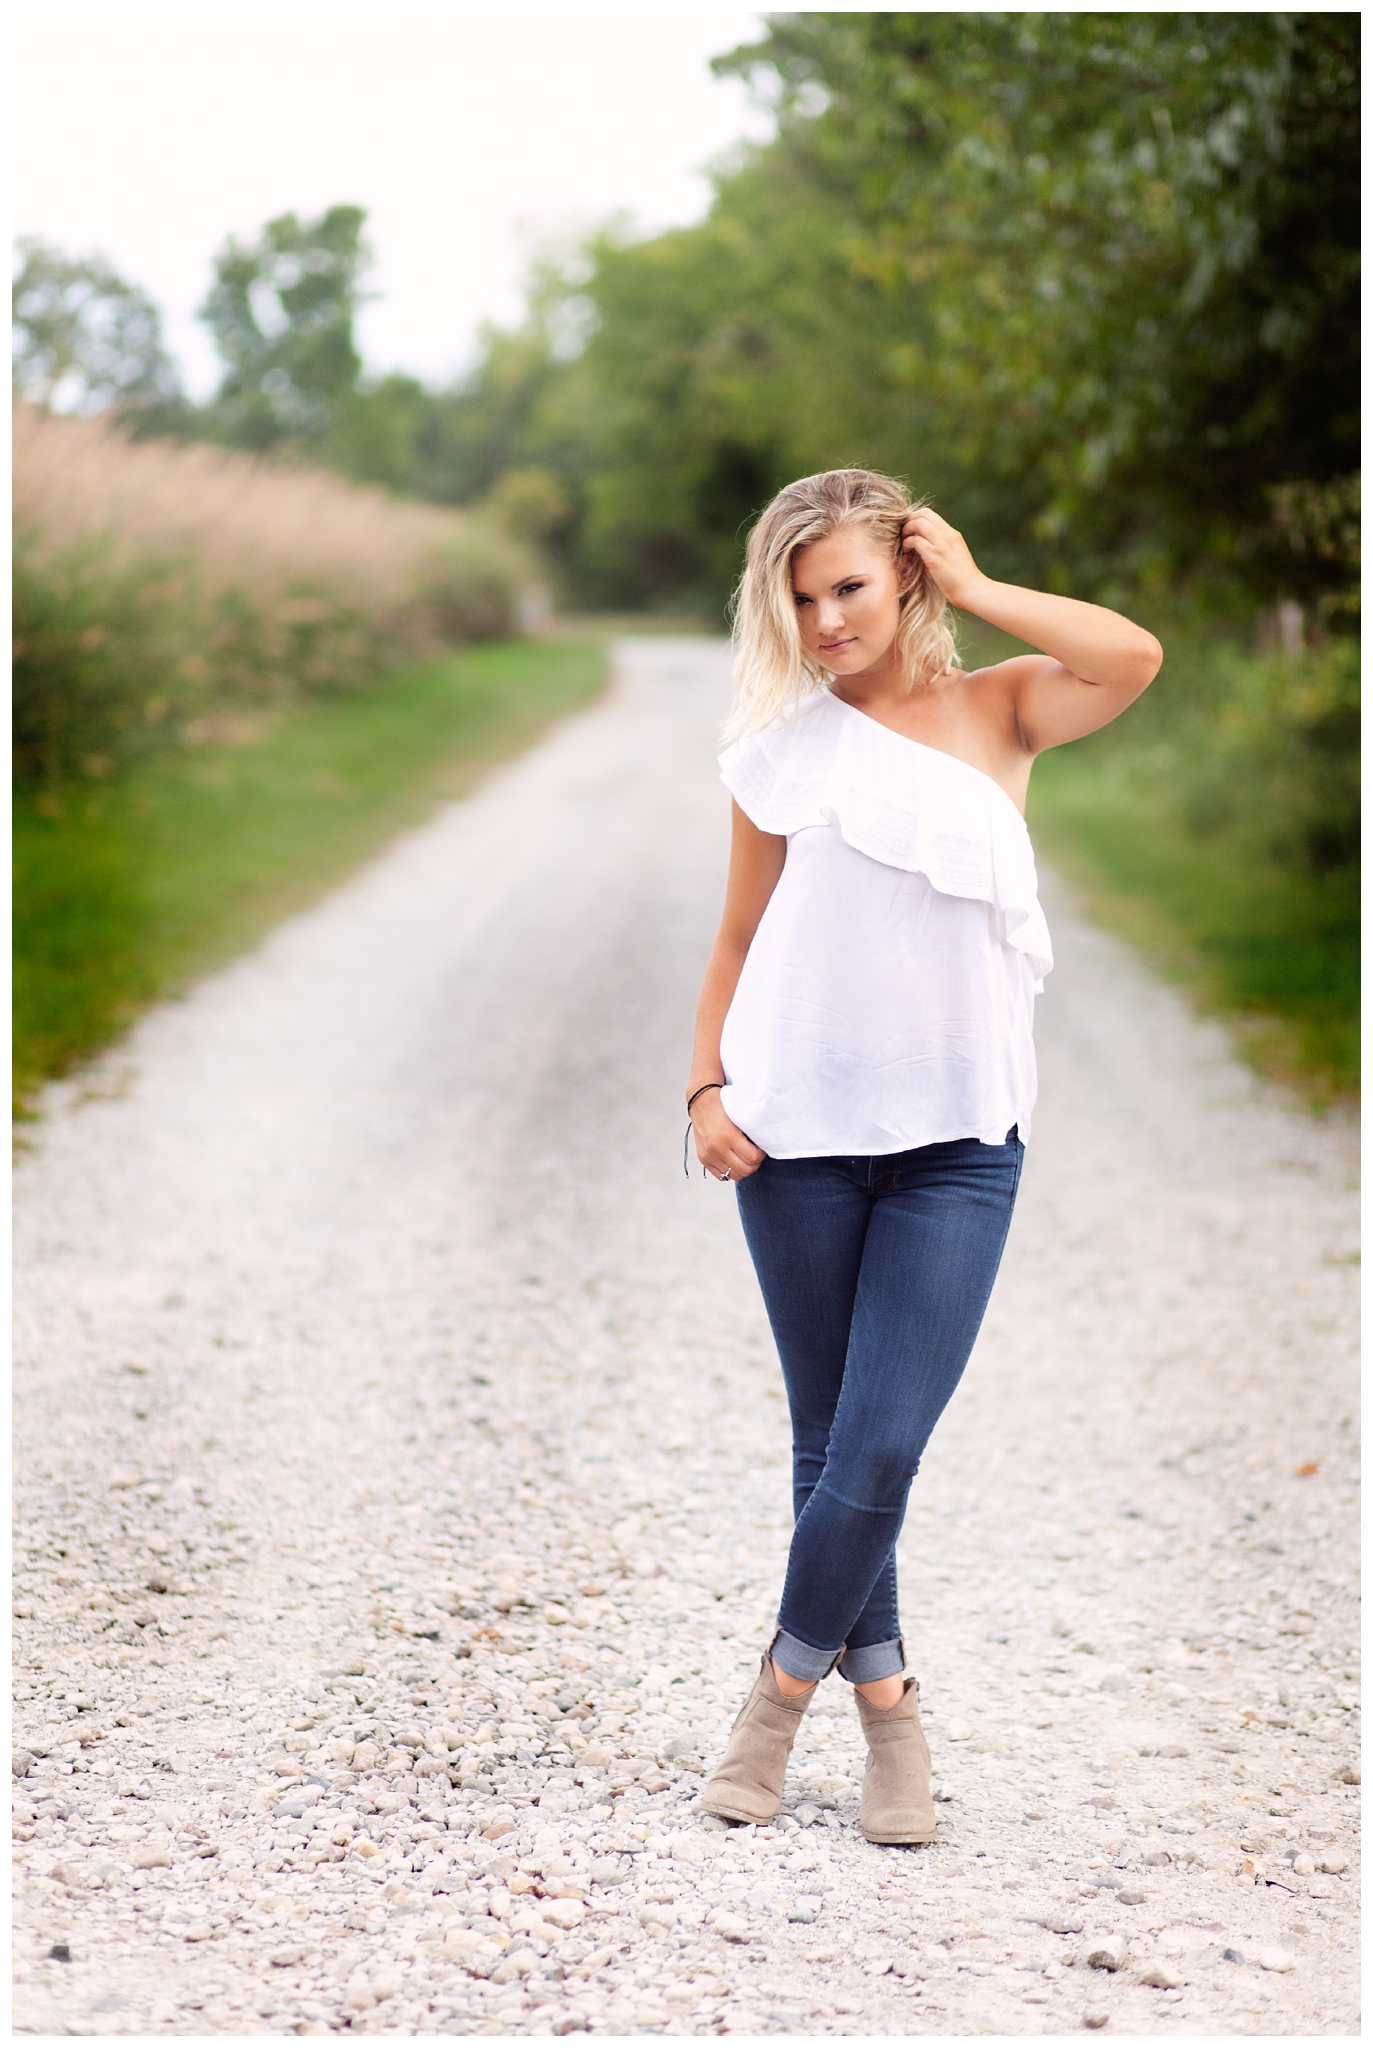 High School Senior Girl in Off Shoulder White Shirt on Rustic Gravel Road Path